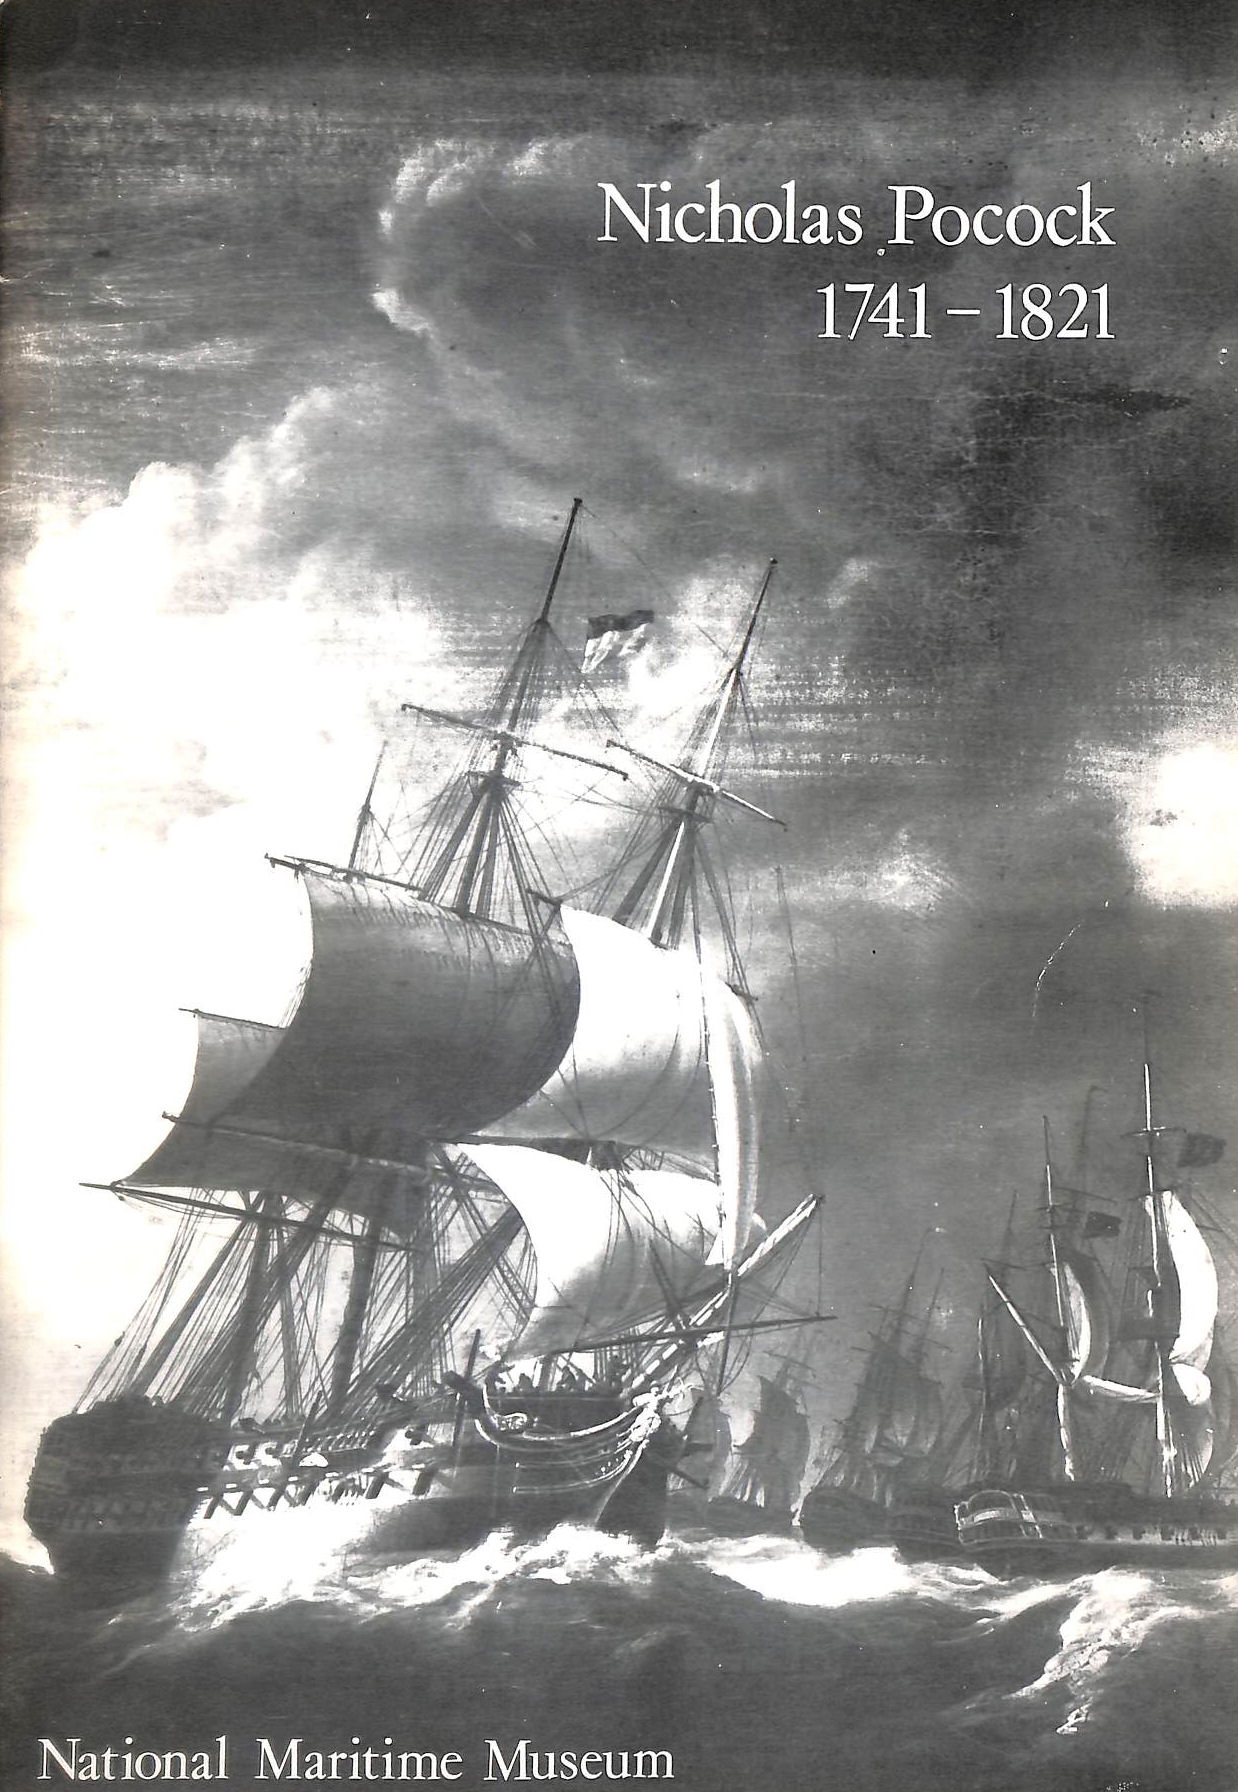 Image for Nicholas Pocock, 1741-1821: A Selection Of His Marine Works From The Collections Of The National Maritime Museum : A Special Exhibition From 12 May To 30 September 1975